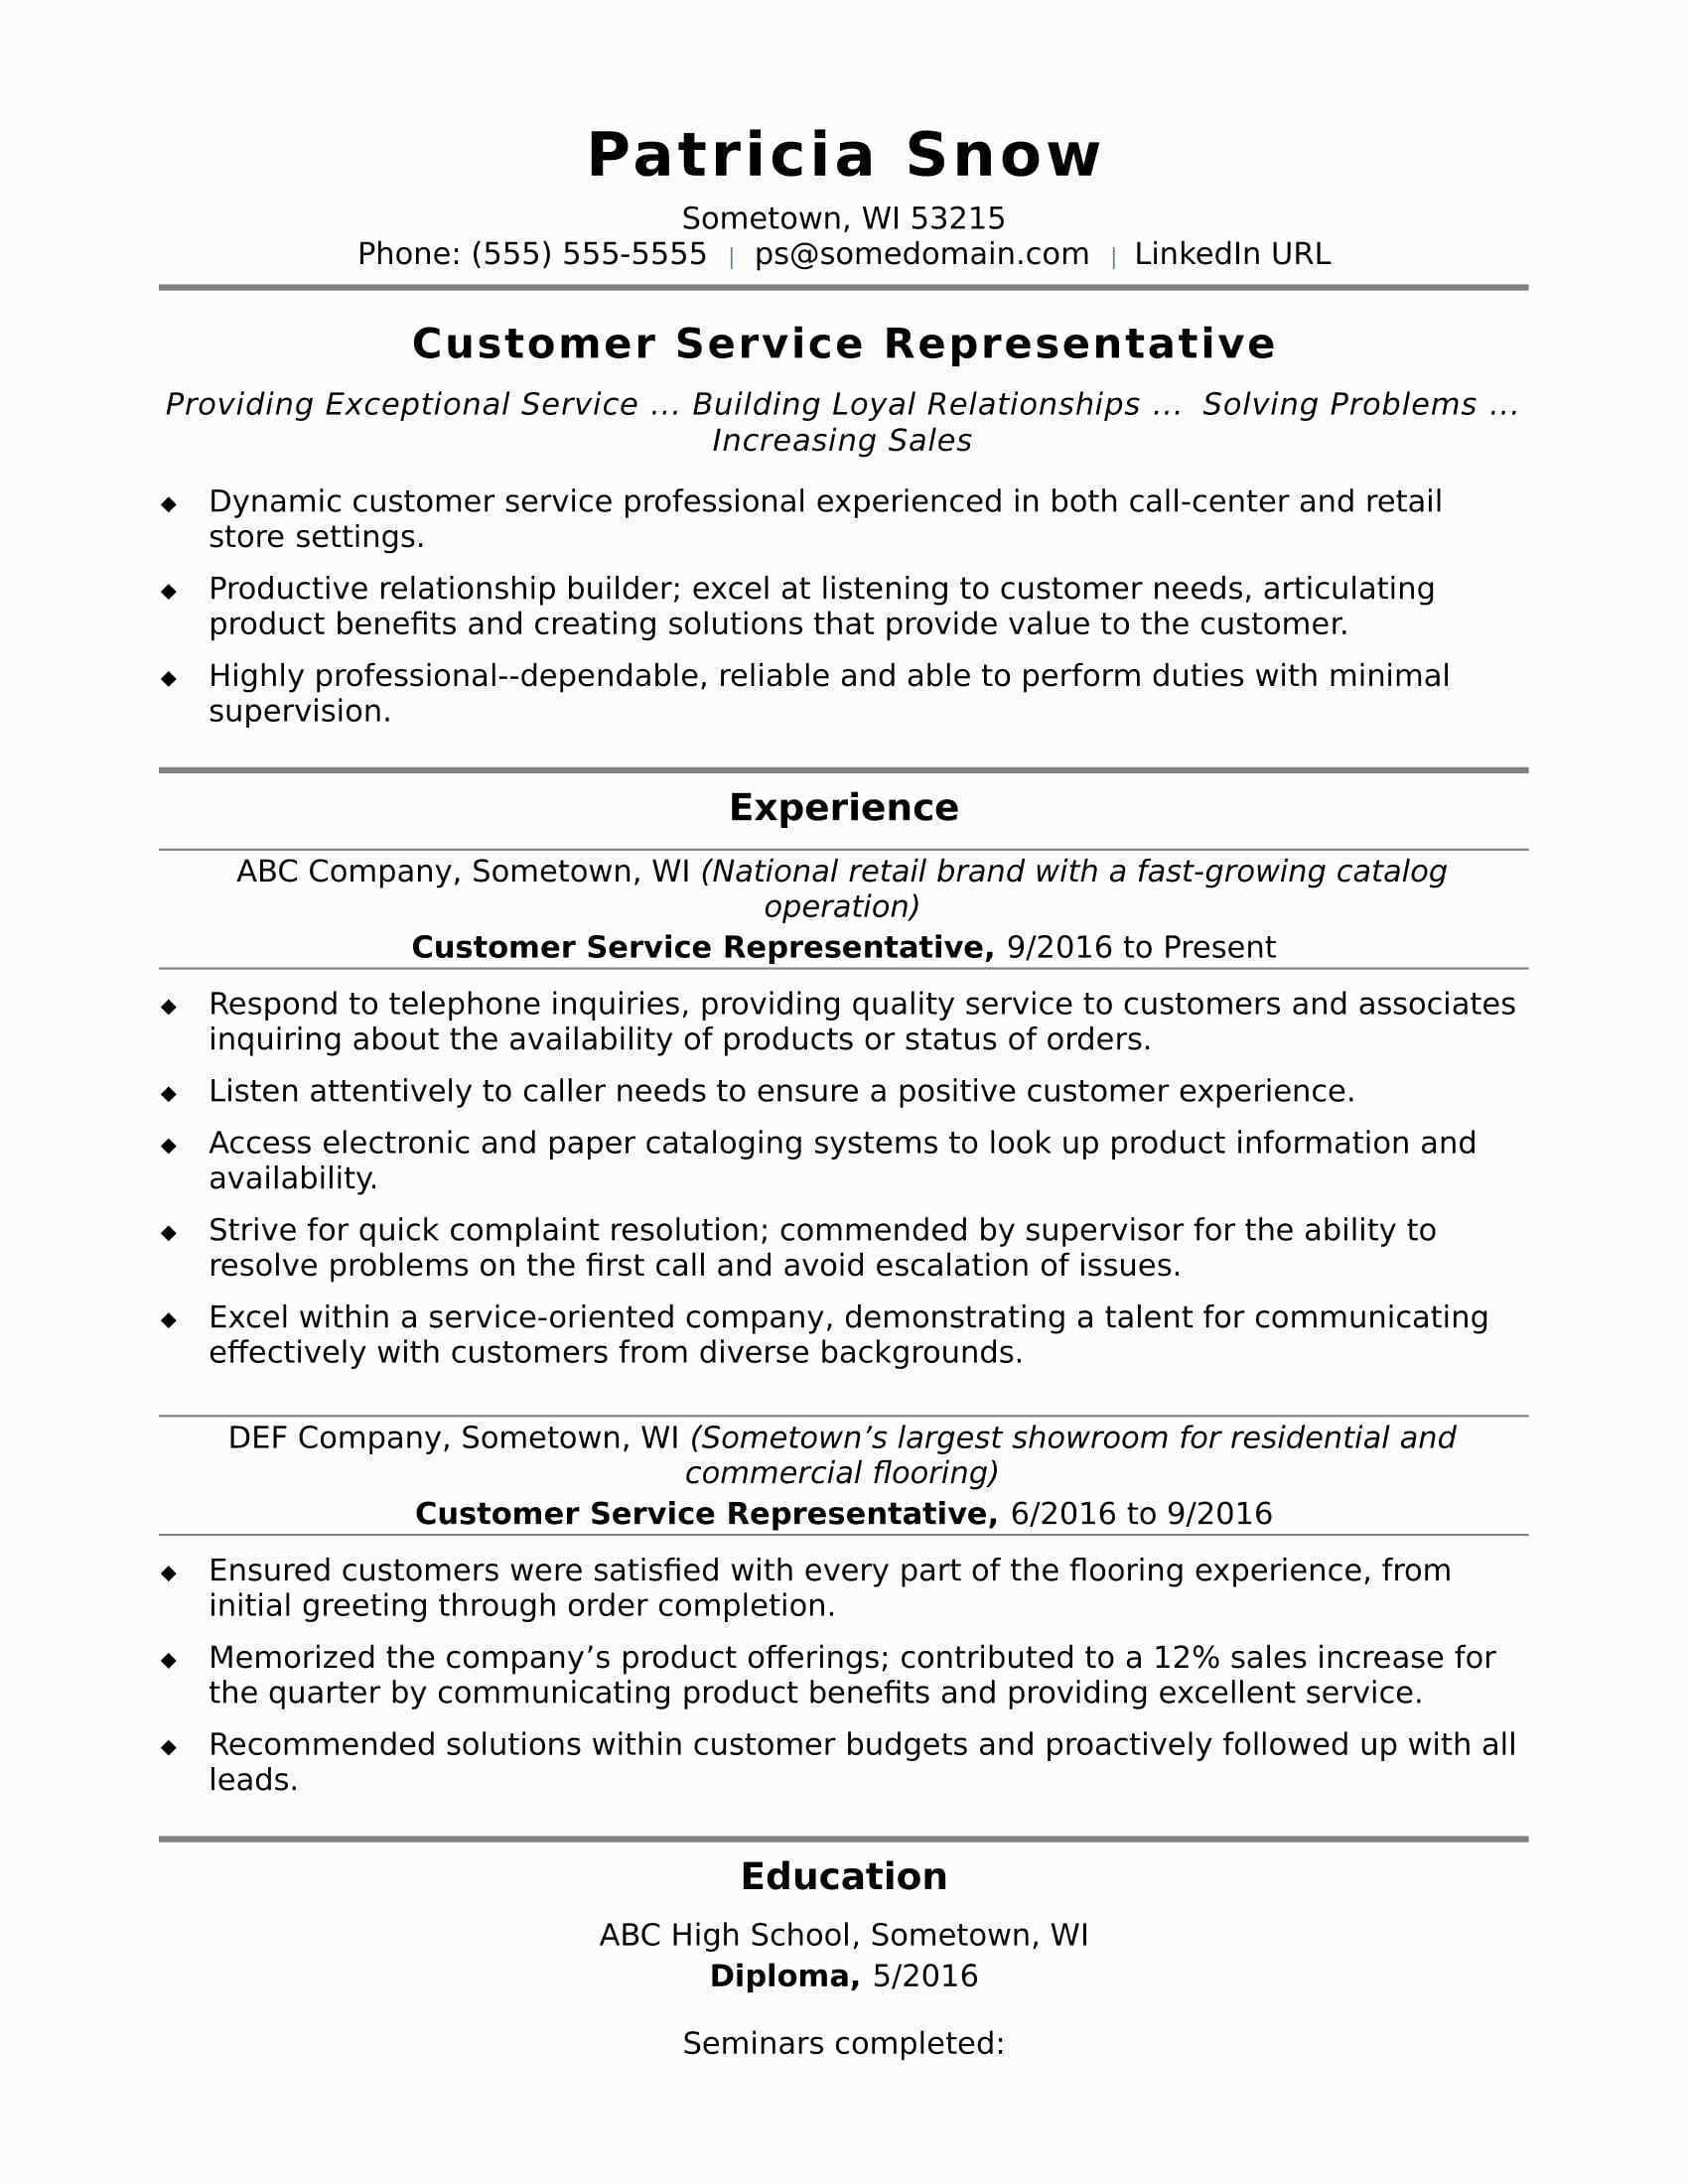 Customer Service Resume Examples Call Center Representative Resume Samples Unique 18 Call Center